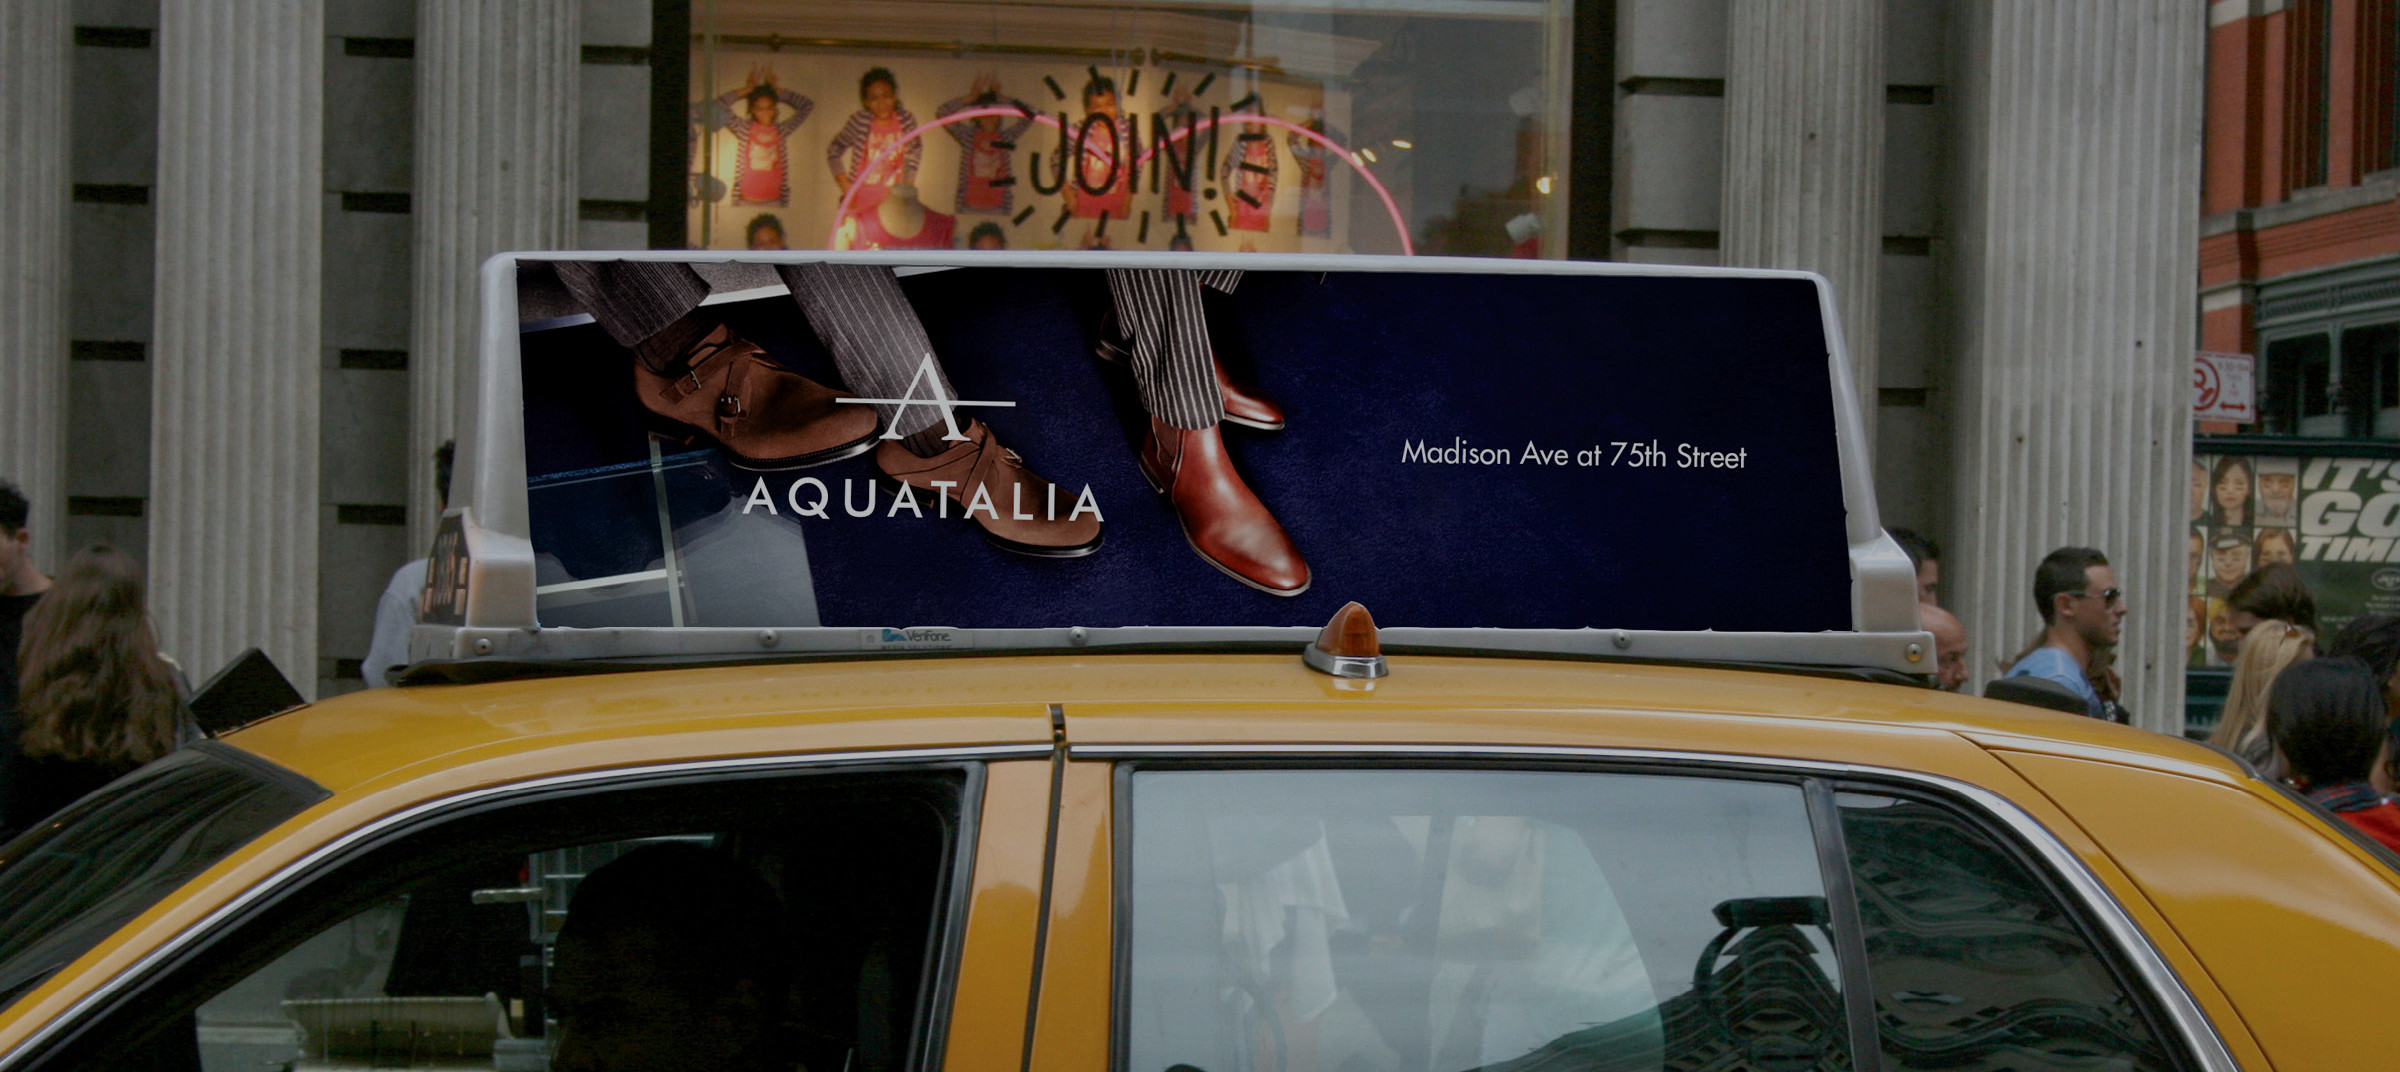 Aquatalia advertisement campaign shown on the top of a cab/.